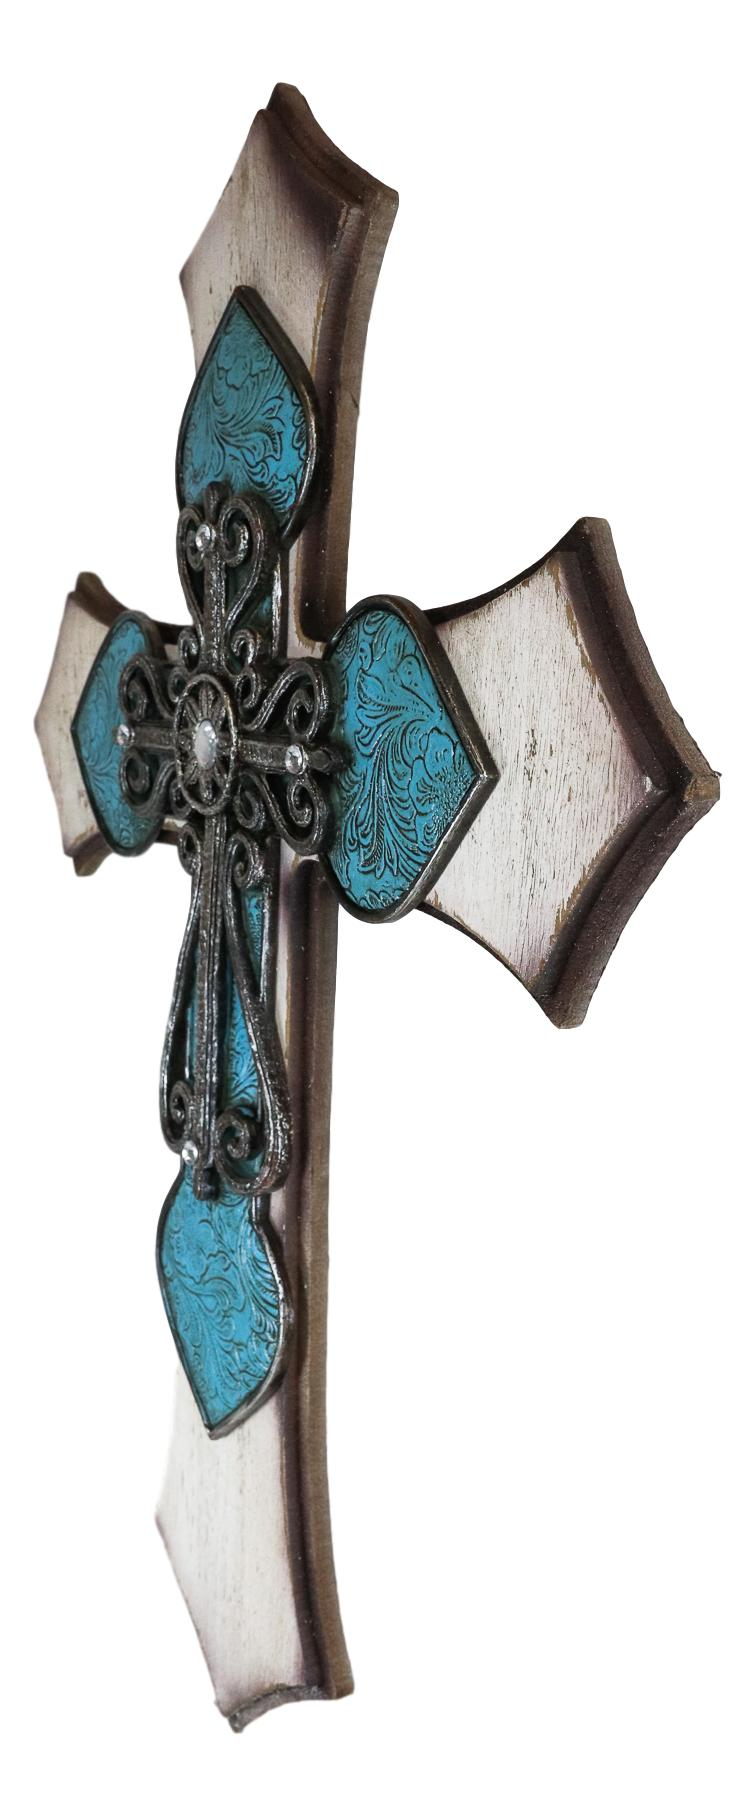 Large Rustic Western Crystal Floral Turquoise Occitan Spade Layered Wall Cross